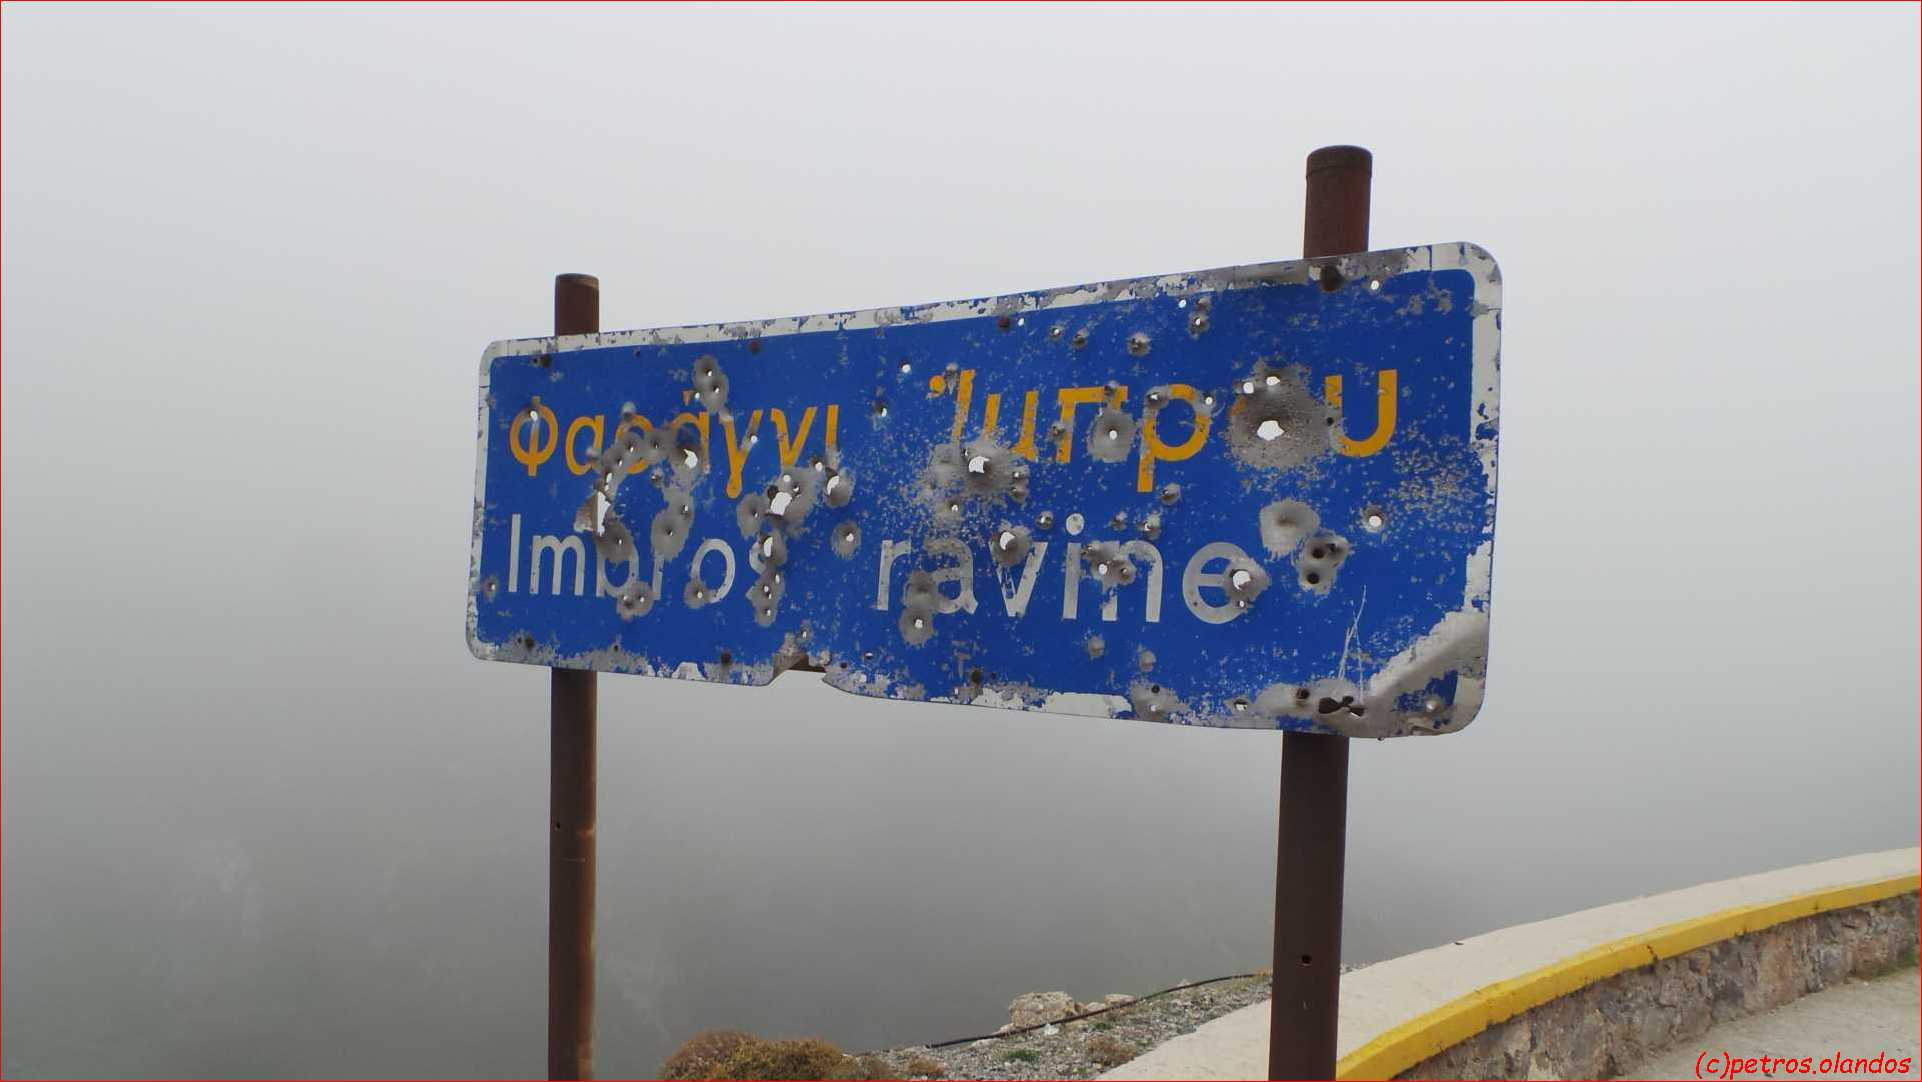 The Village Sign Imbros